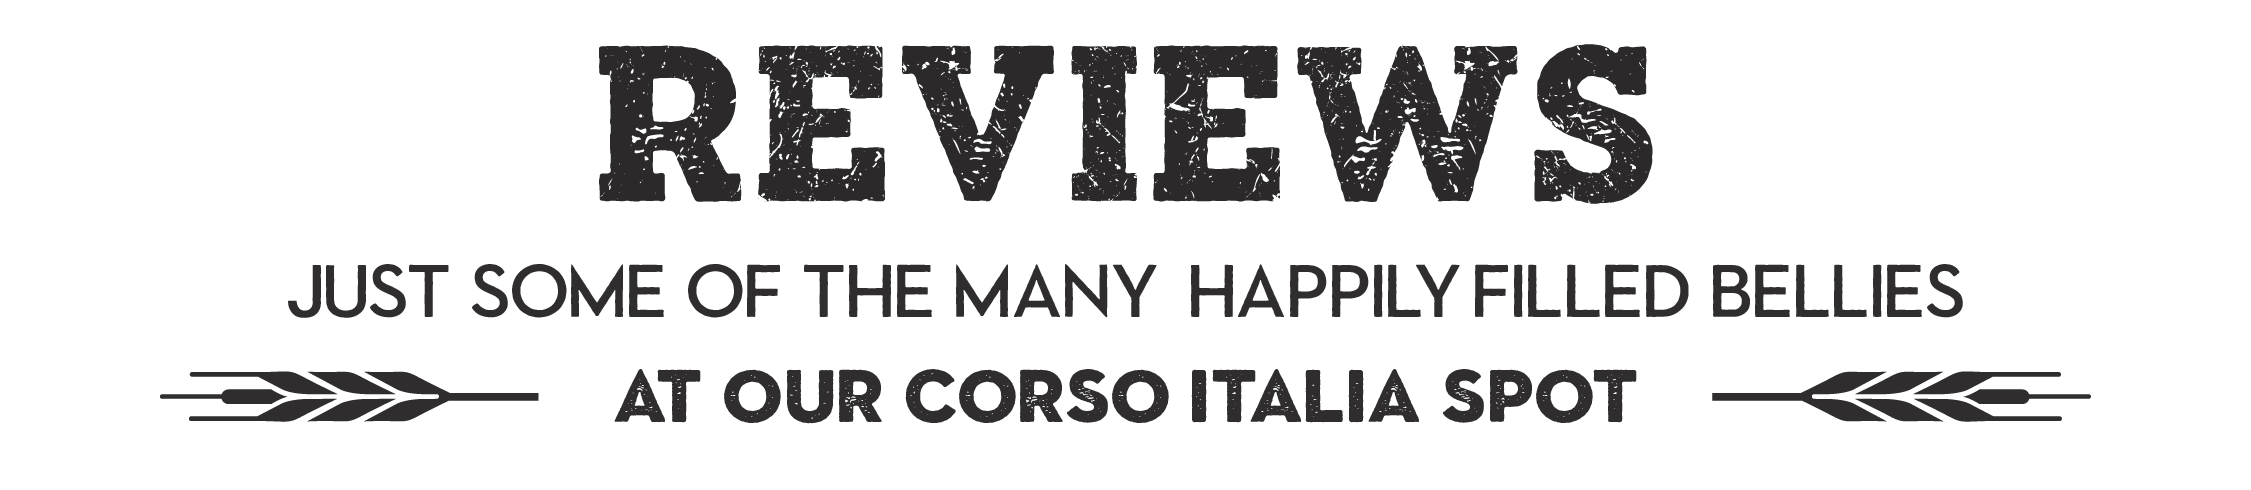 HEADING TEXT: REVIEWS - JUST SOME OF THE MANY HAPPILY FILLED BELLIES AT OUR CORSO ITALIA SPOT